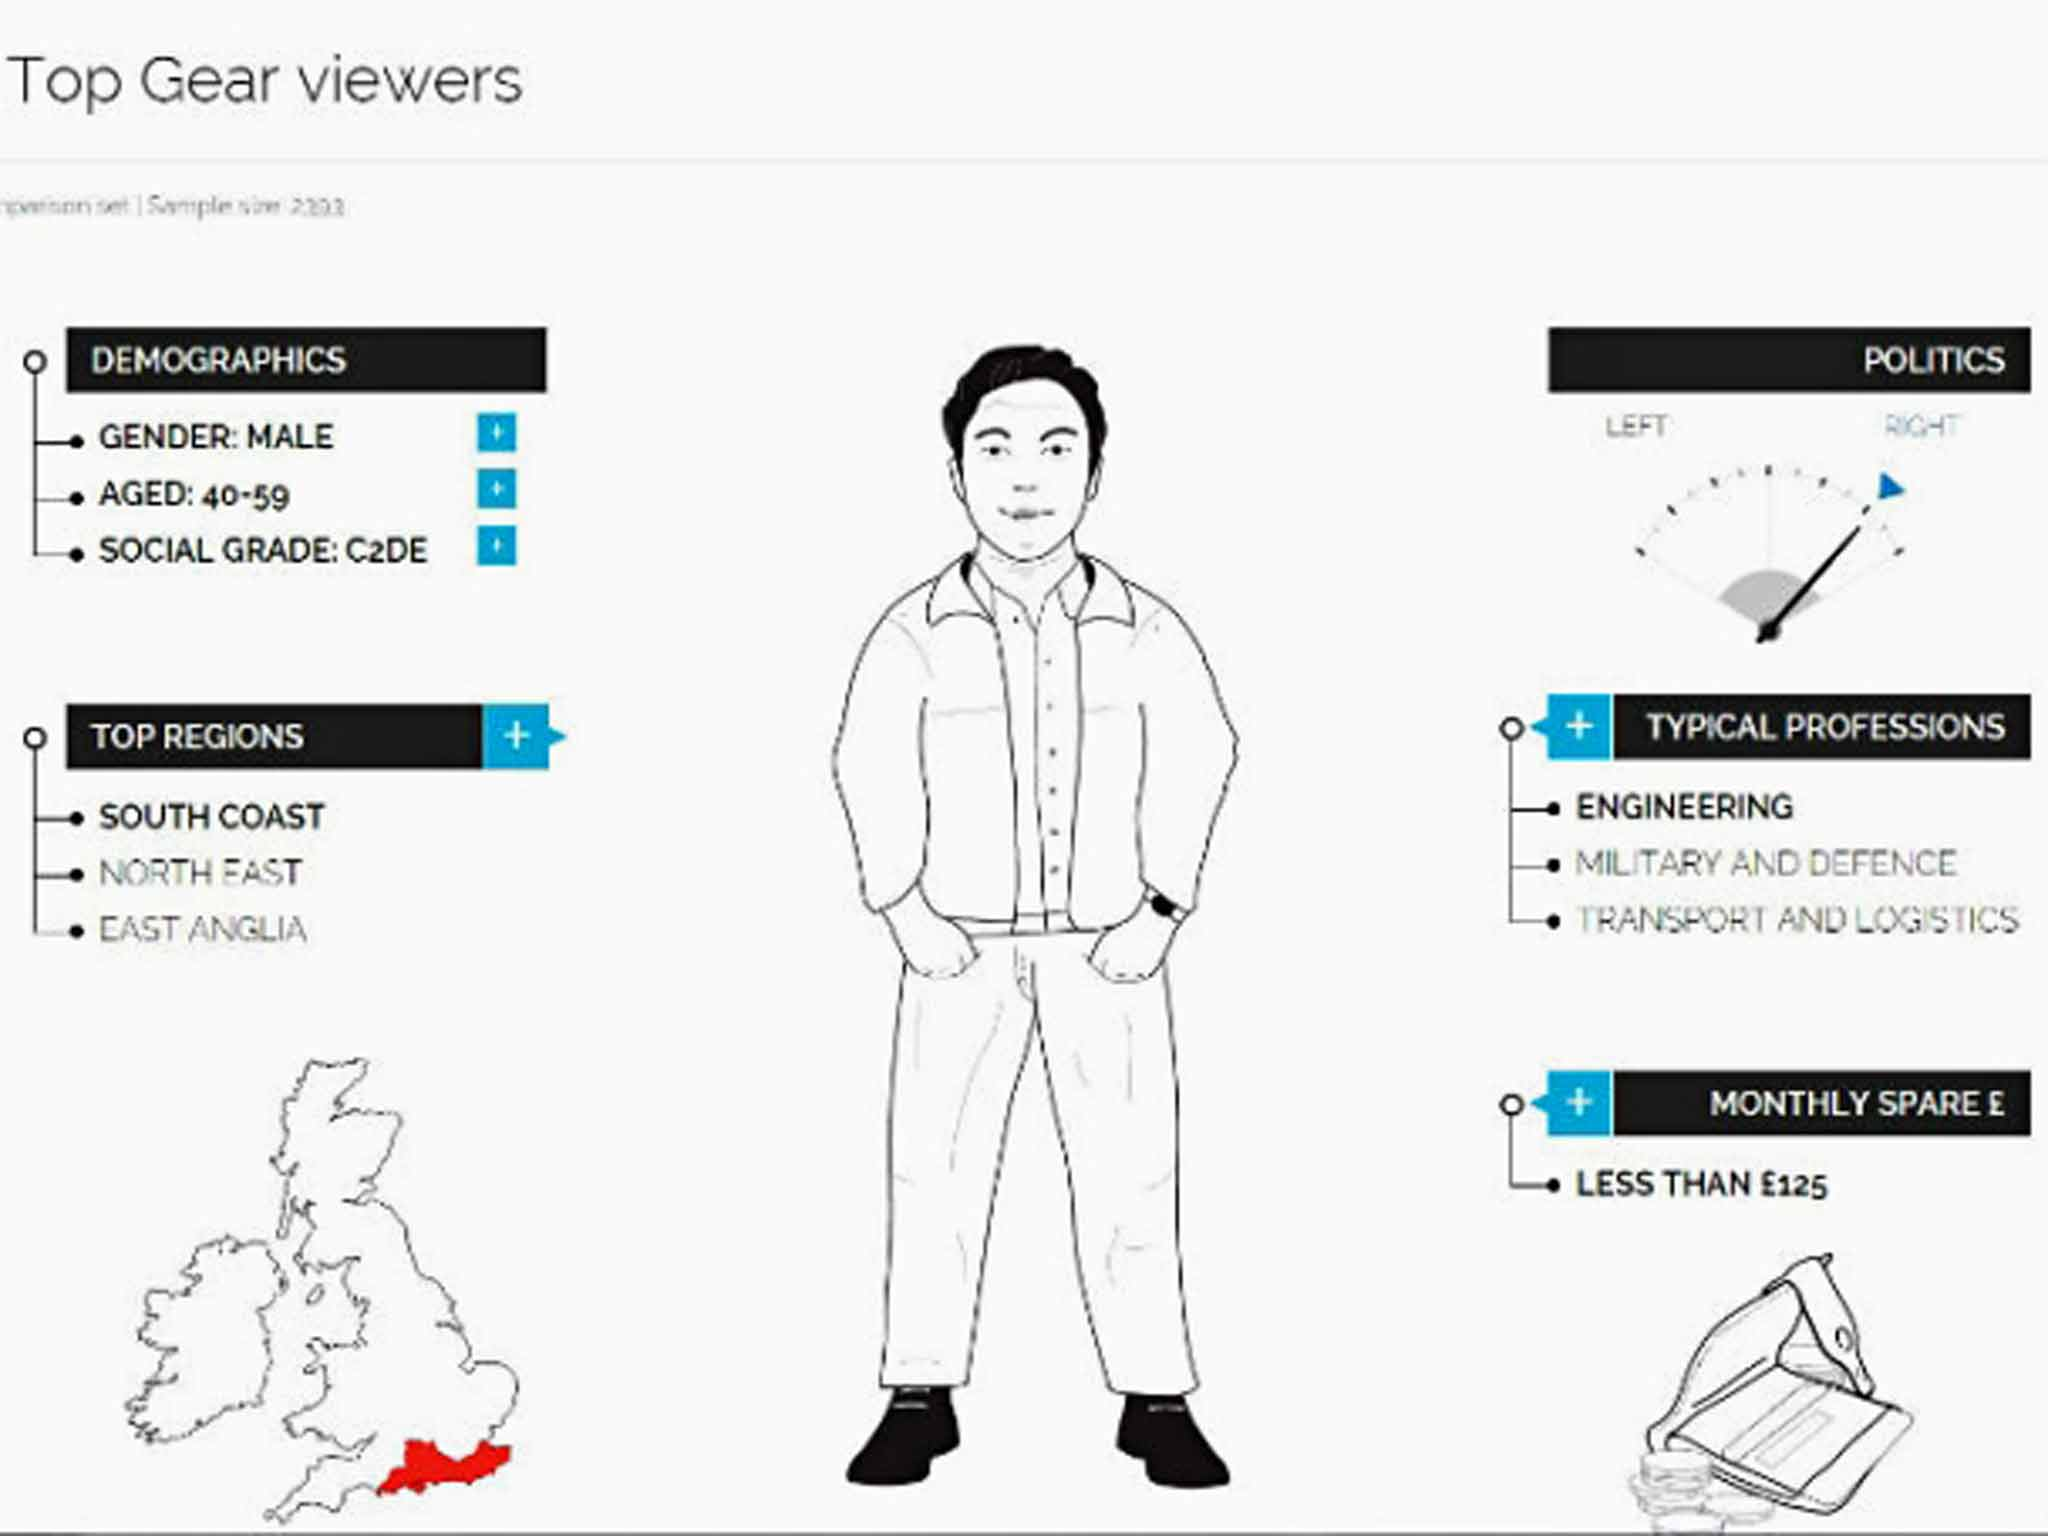 YouGov Profiler: What are the vital statistics of an